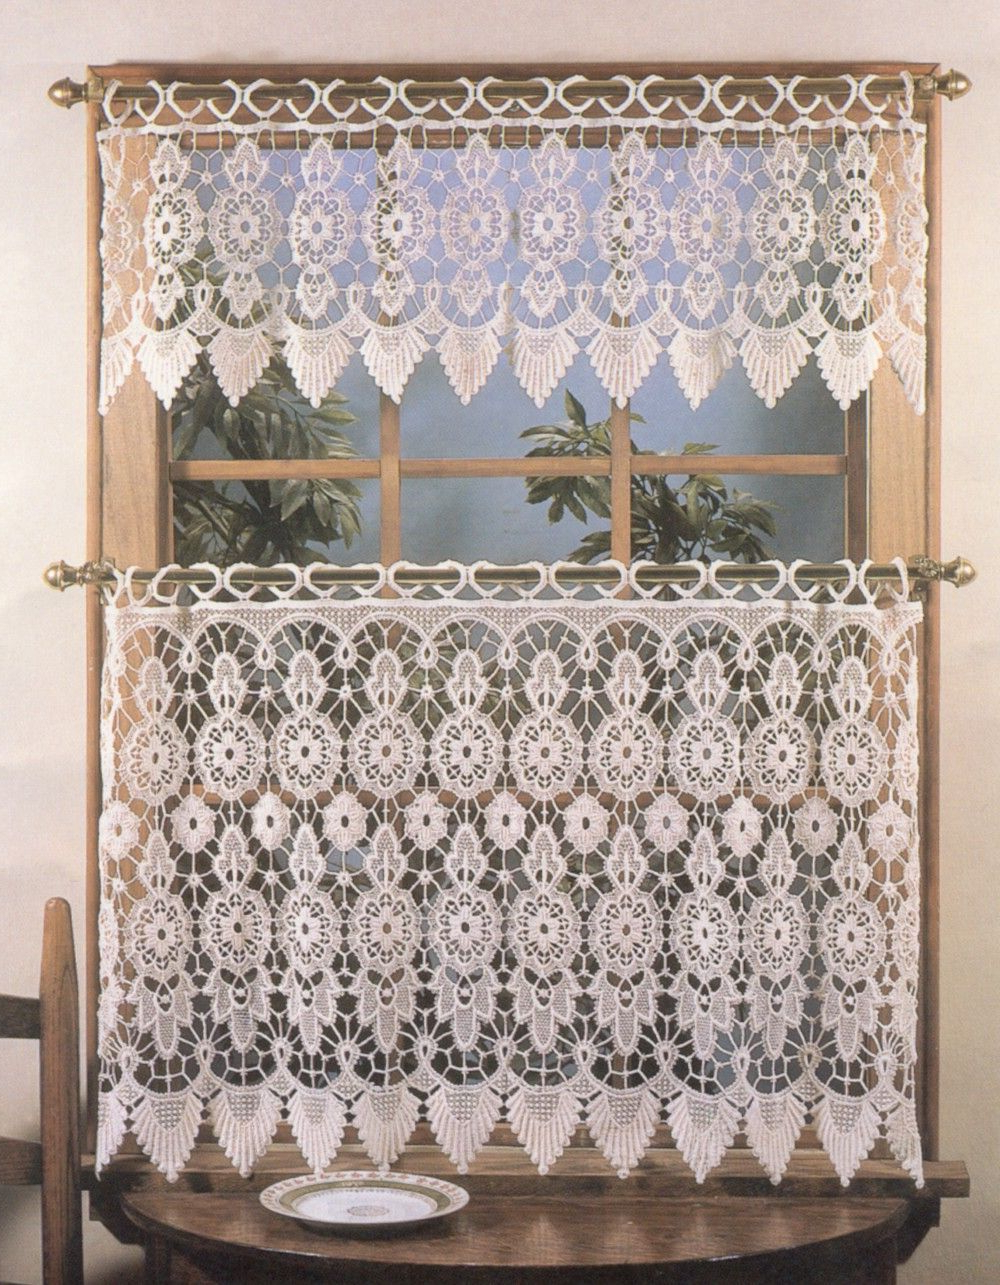 Diy Intended For French Vanilla Country Style Curtain Parts With White Daisy Lace Accent (View 18 of 20)